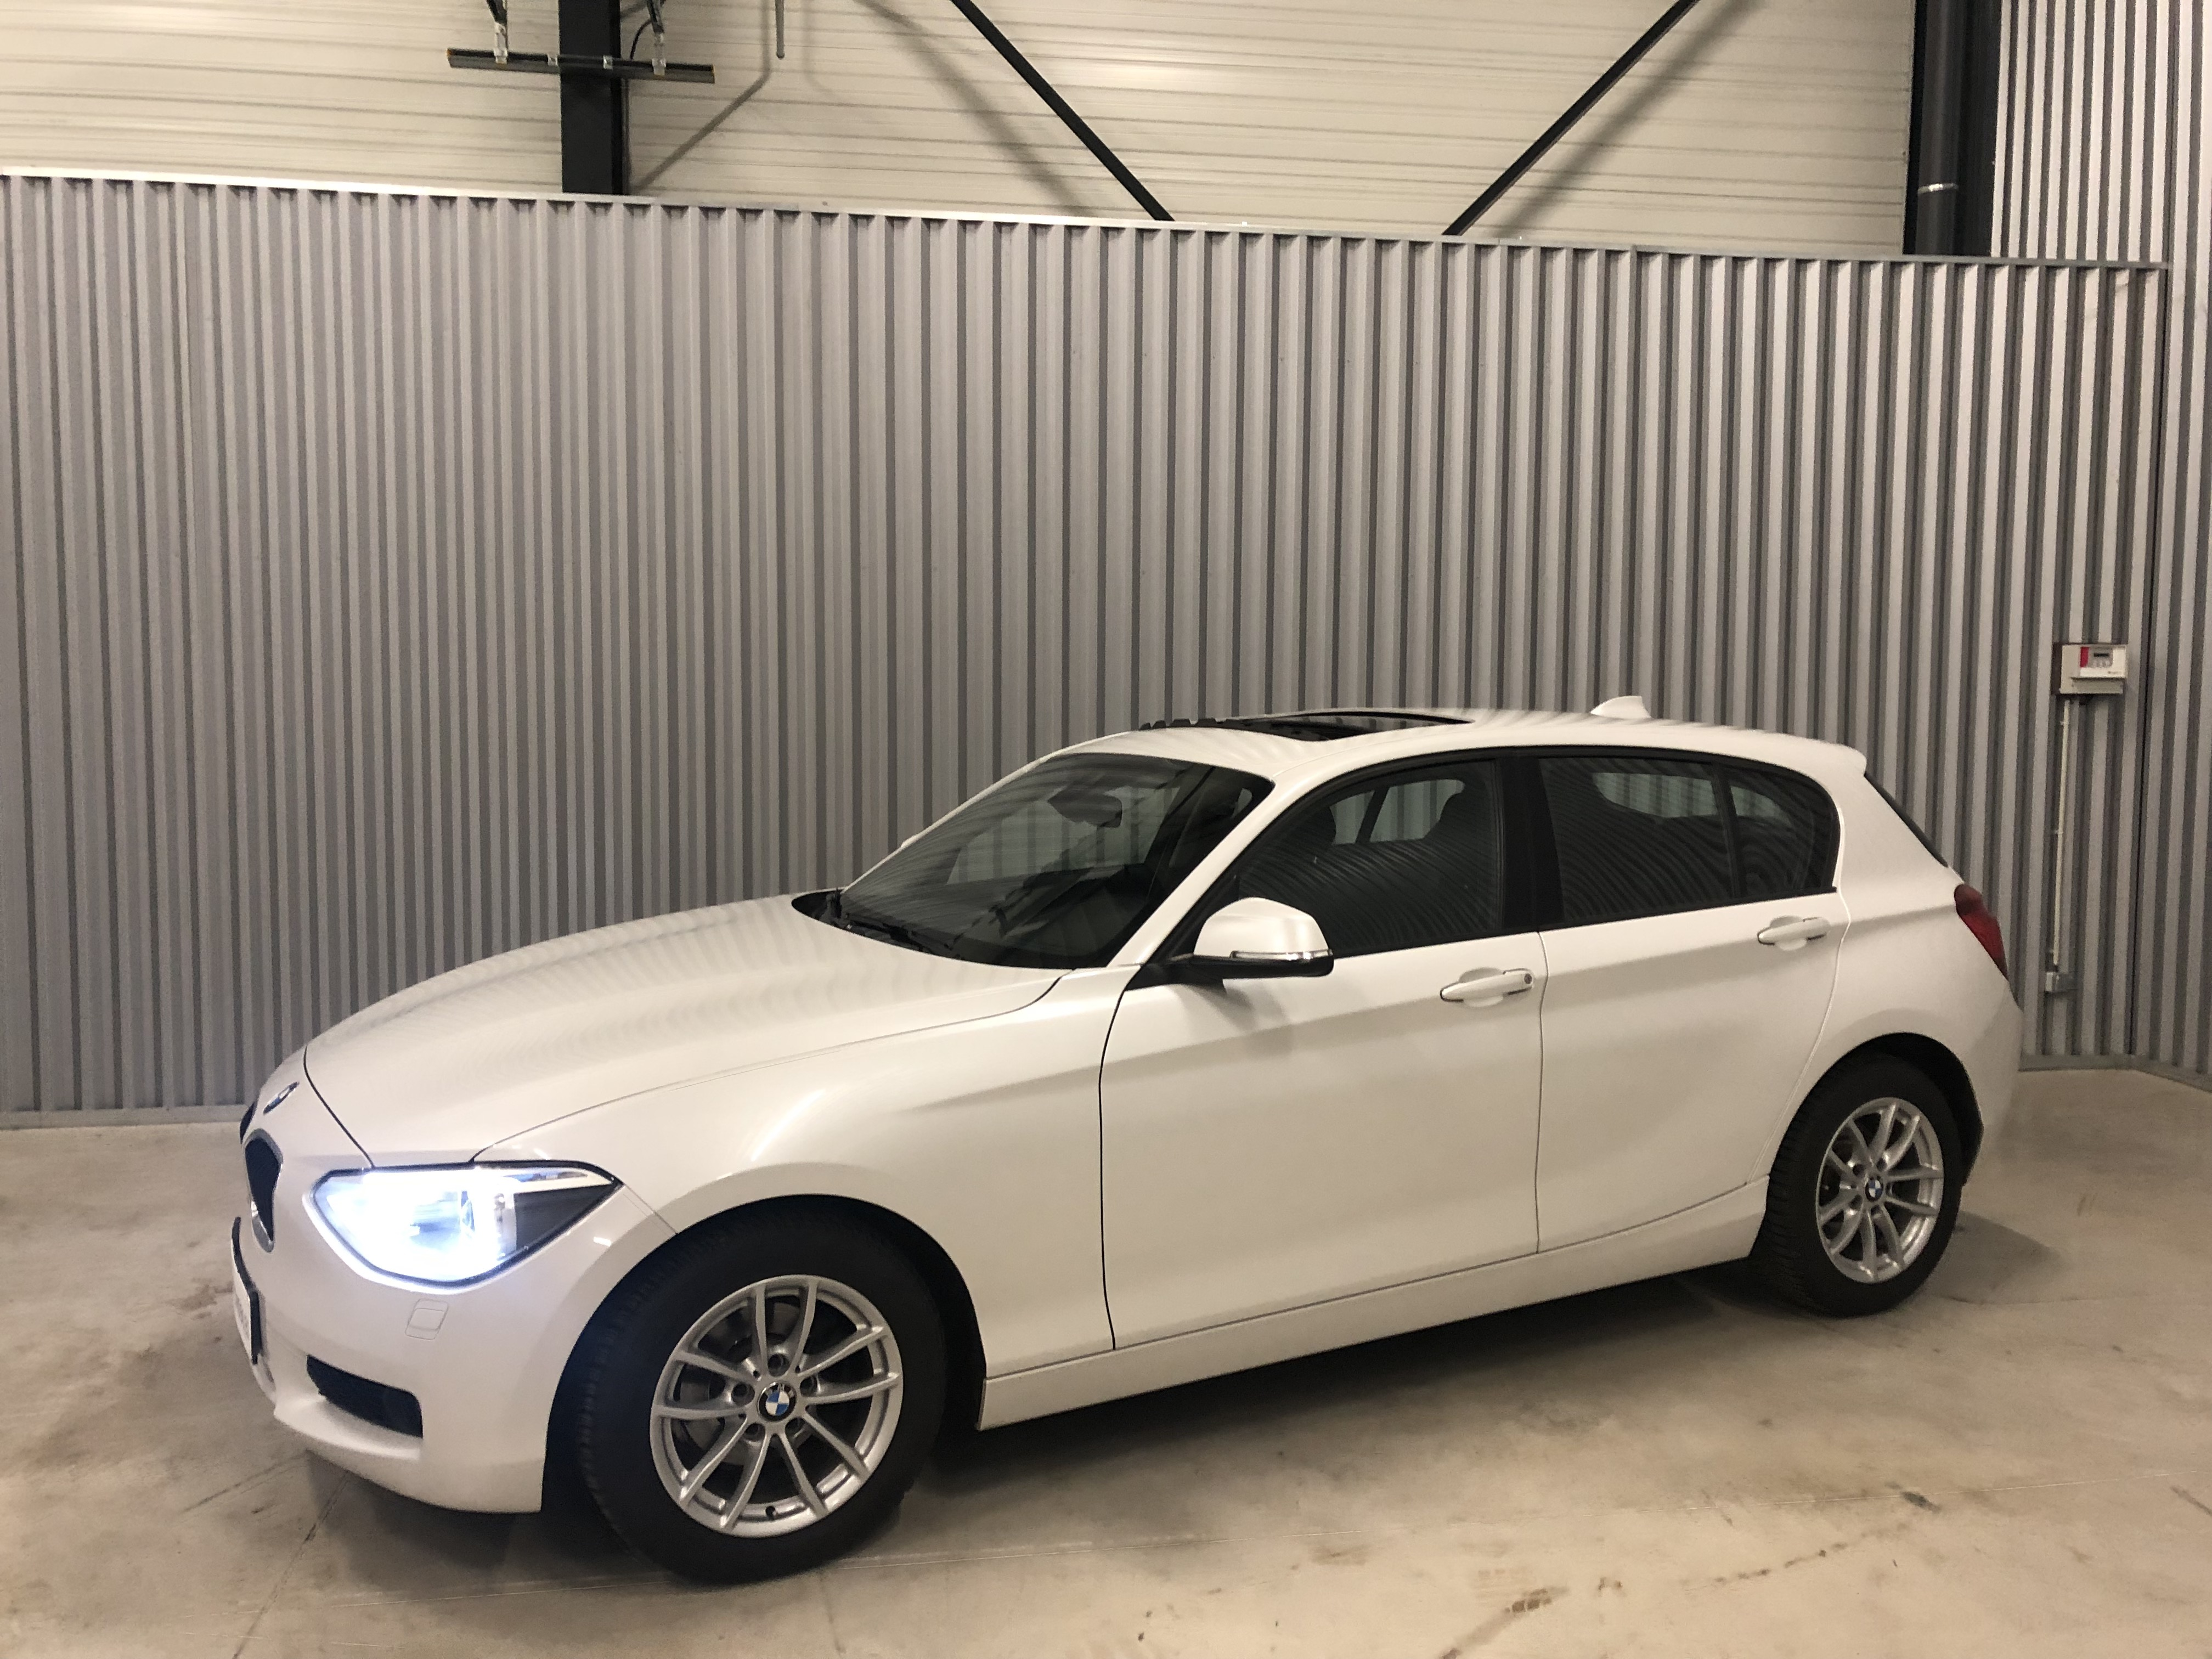 BMW Serie 116i Toit ouvrant Blanc Image